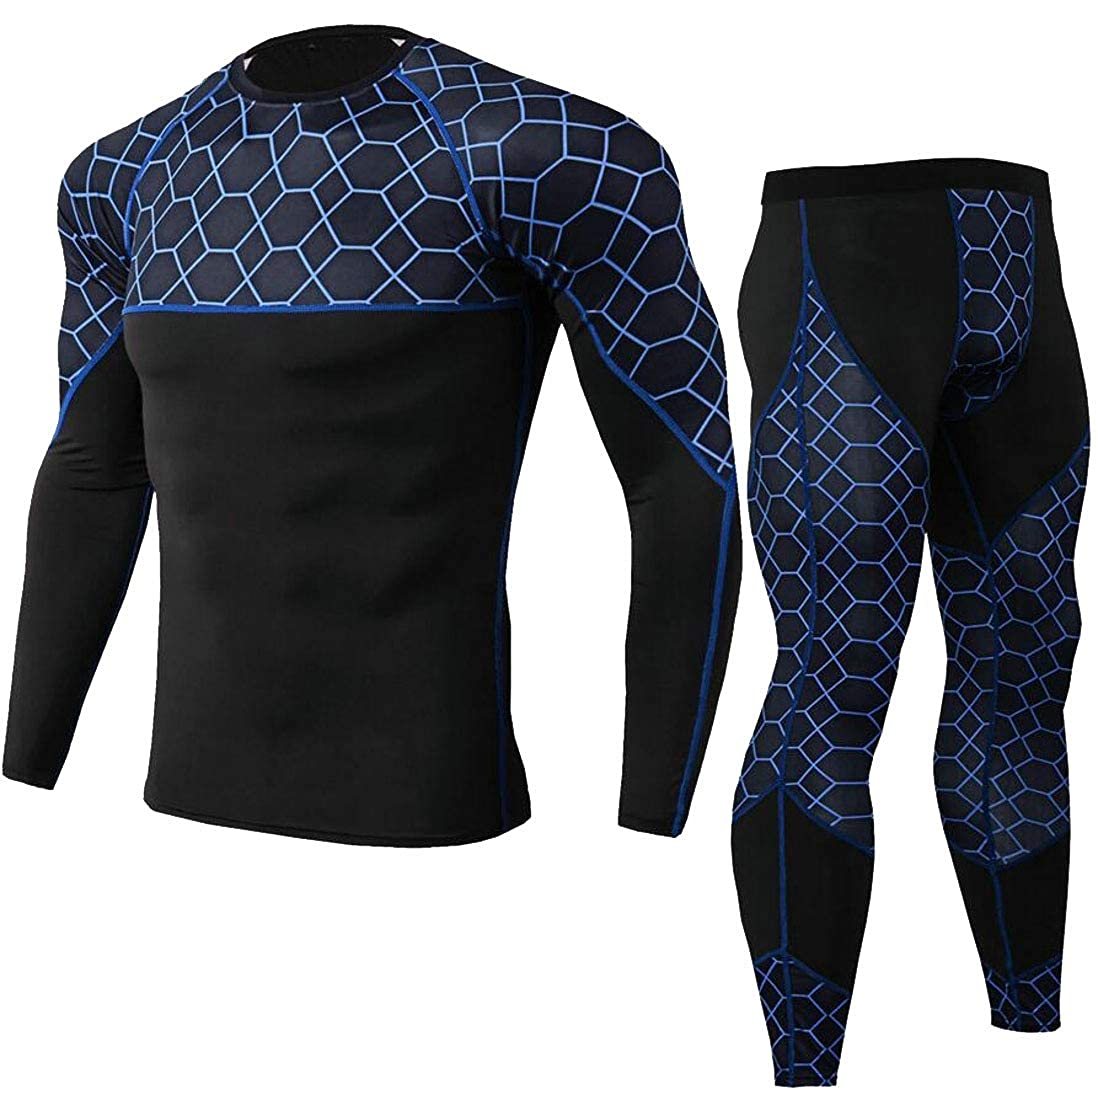 omniscient Men 2 Piece Compression Base Layers Suits with Shirts and Pants